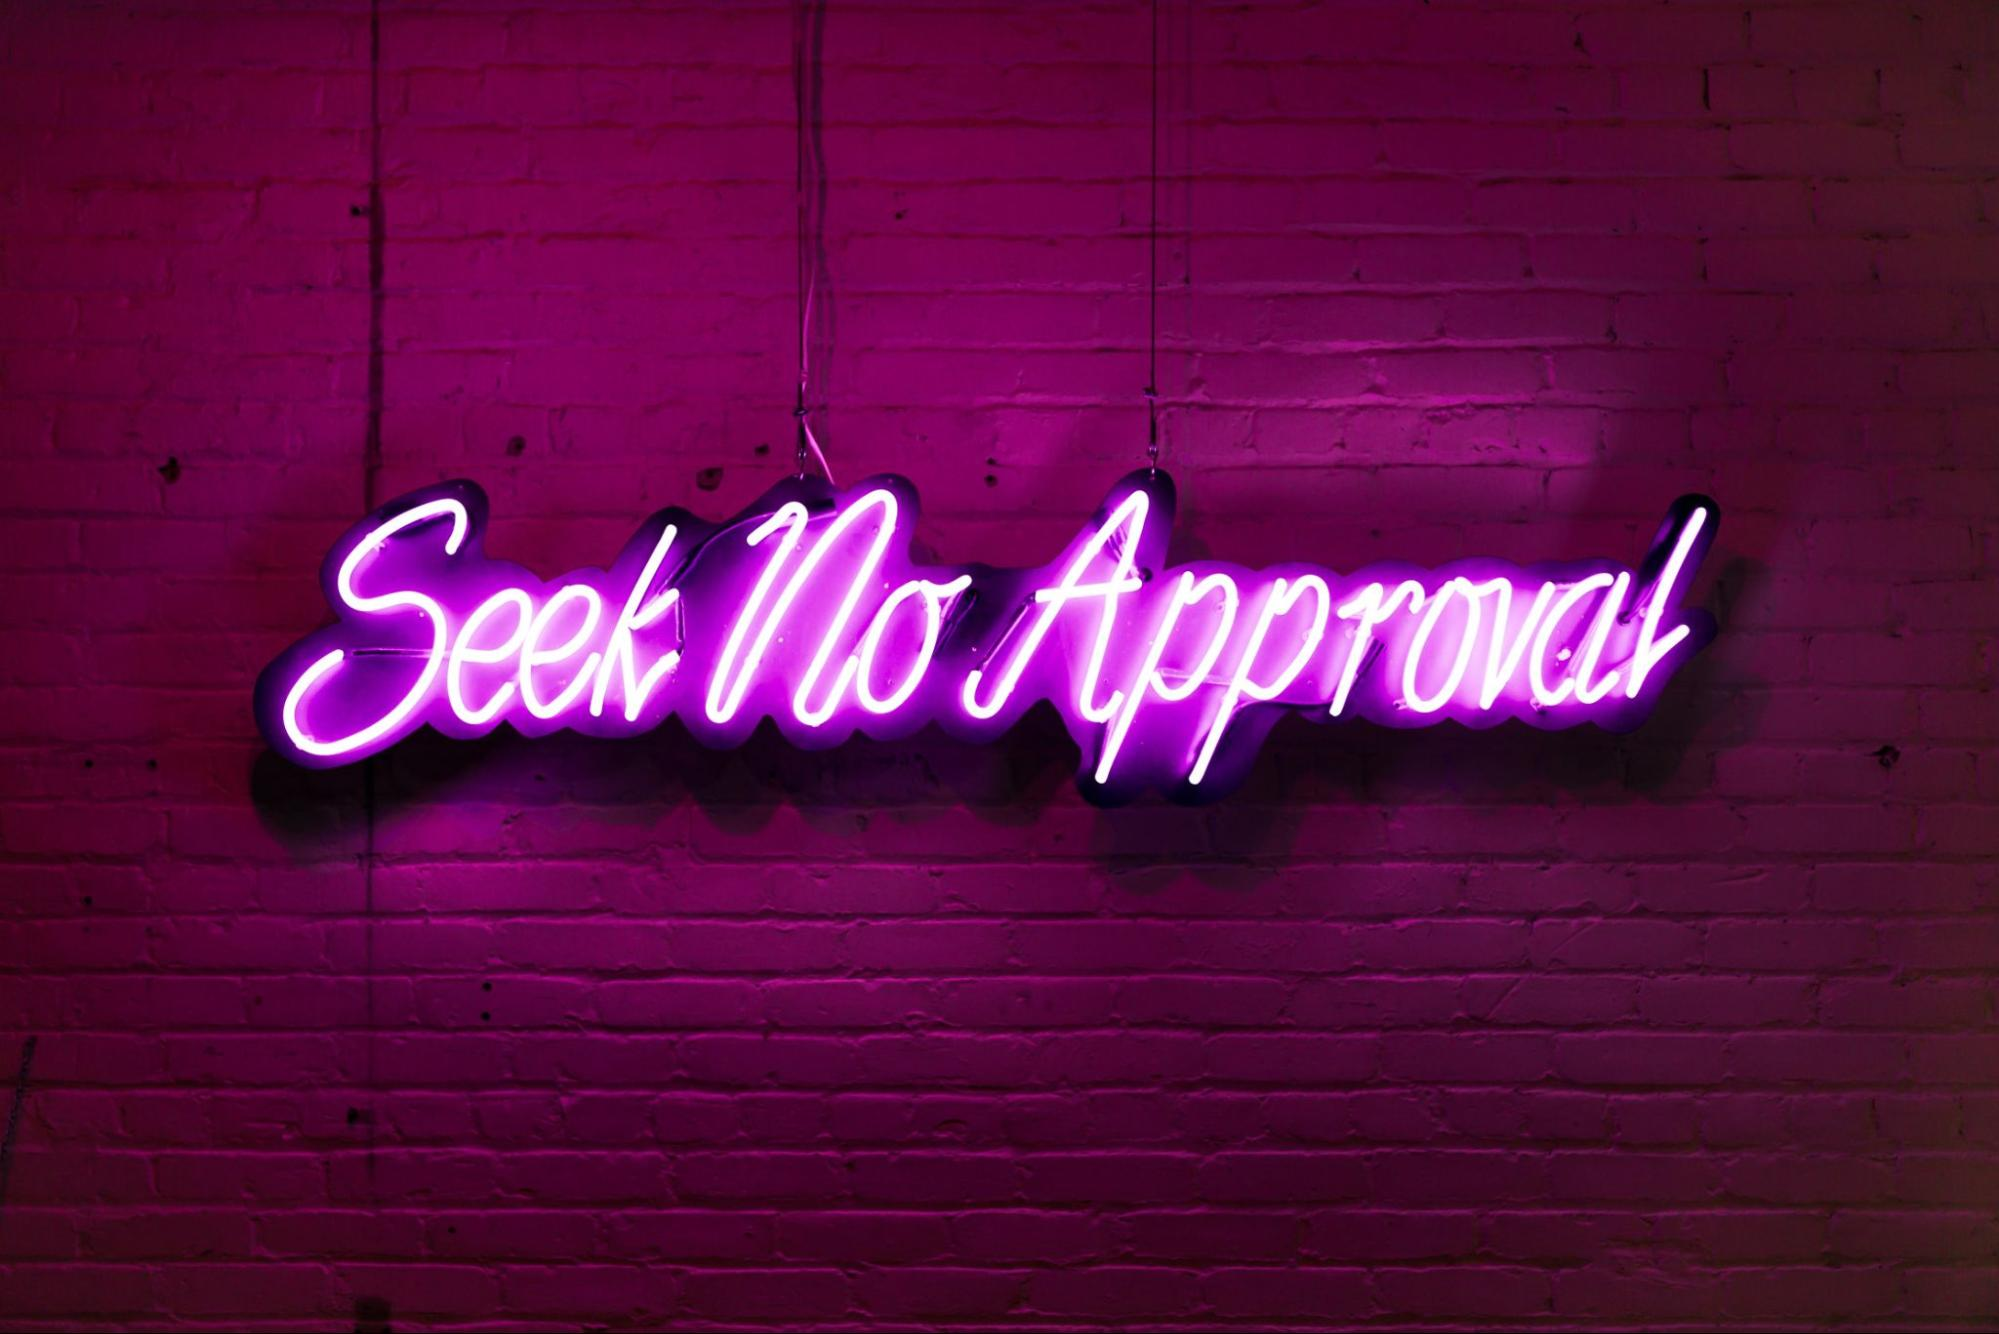 neon sign image